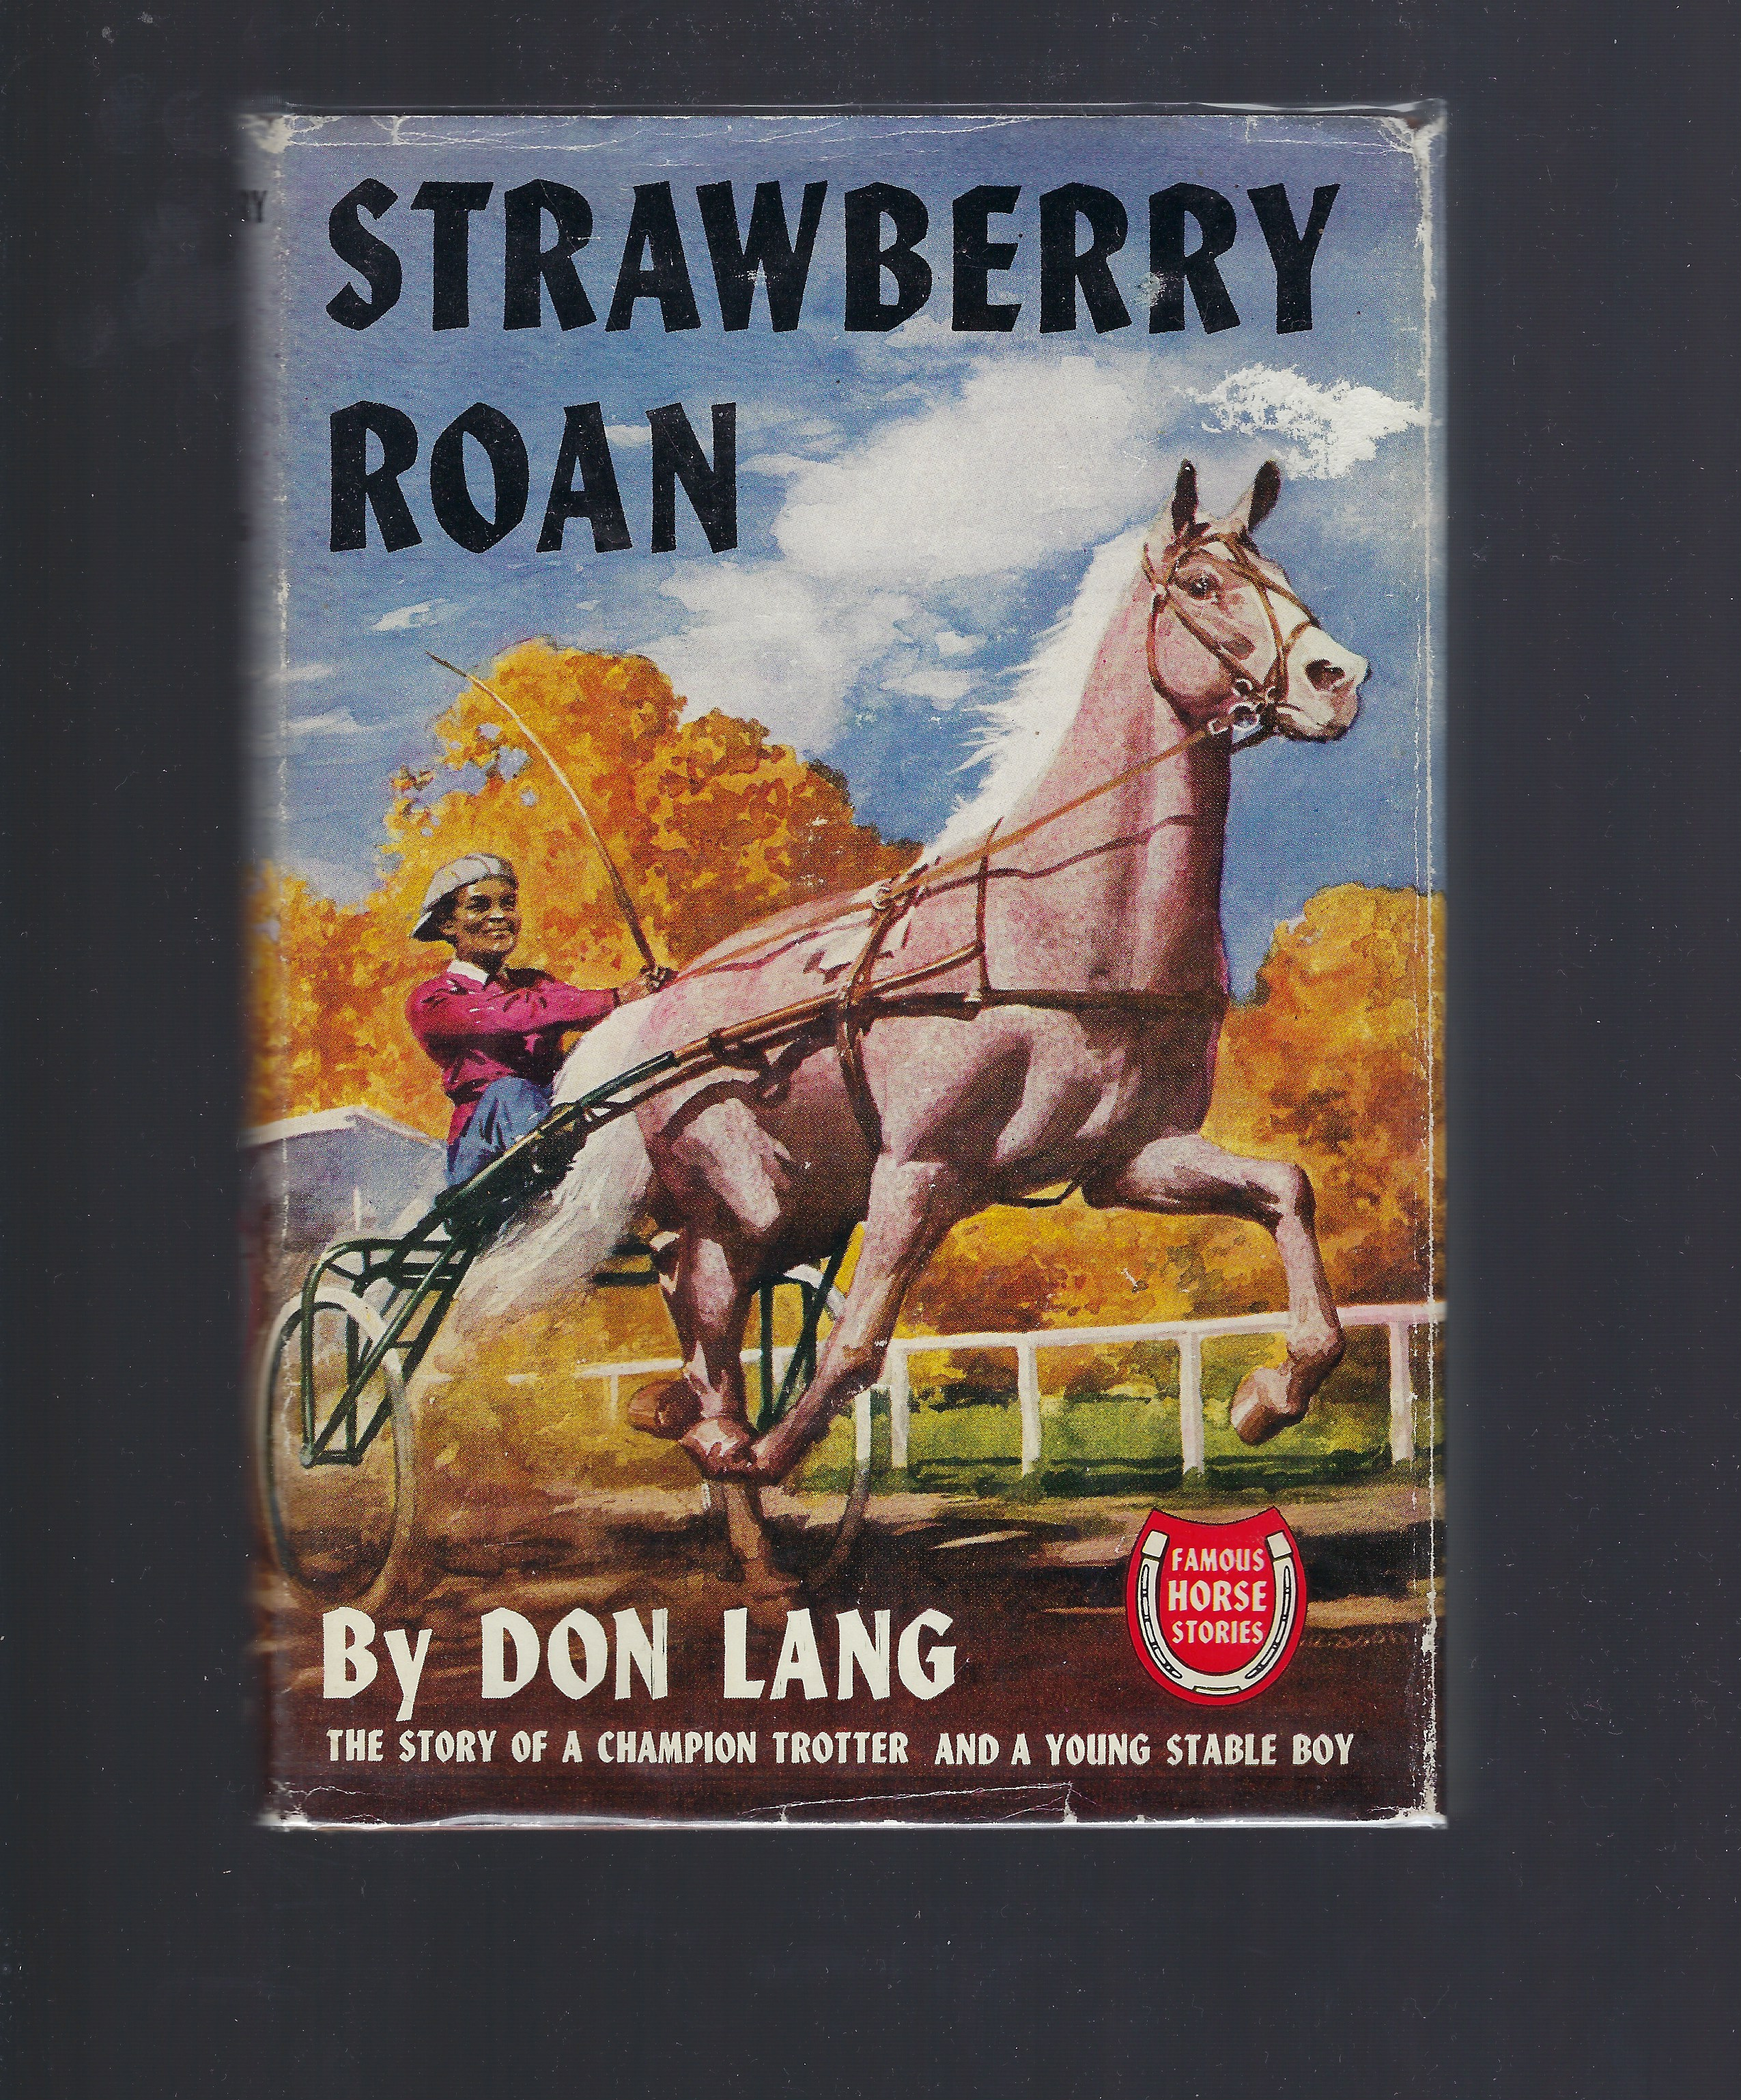 Strawberry Roan (Famous Horse Stories HB/DJ The Story of a Champion Trotter and a Young Stable Boy, Don Lang